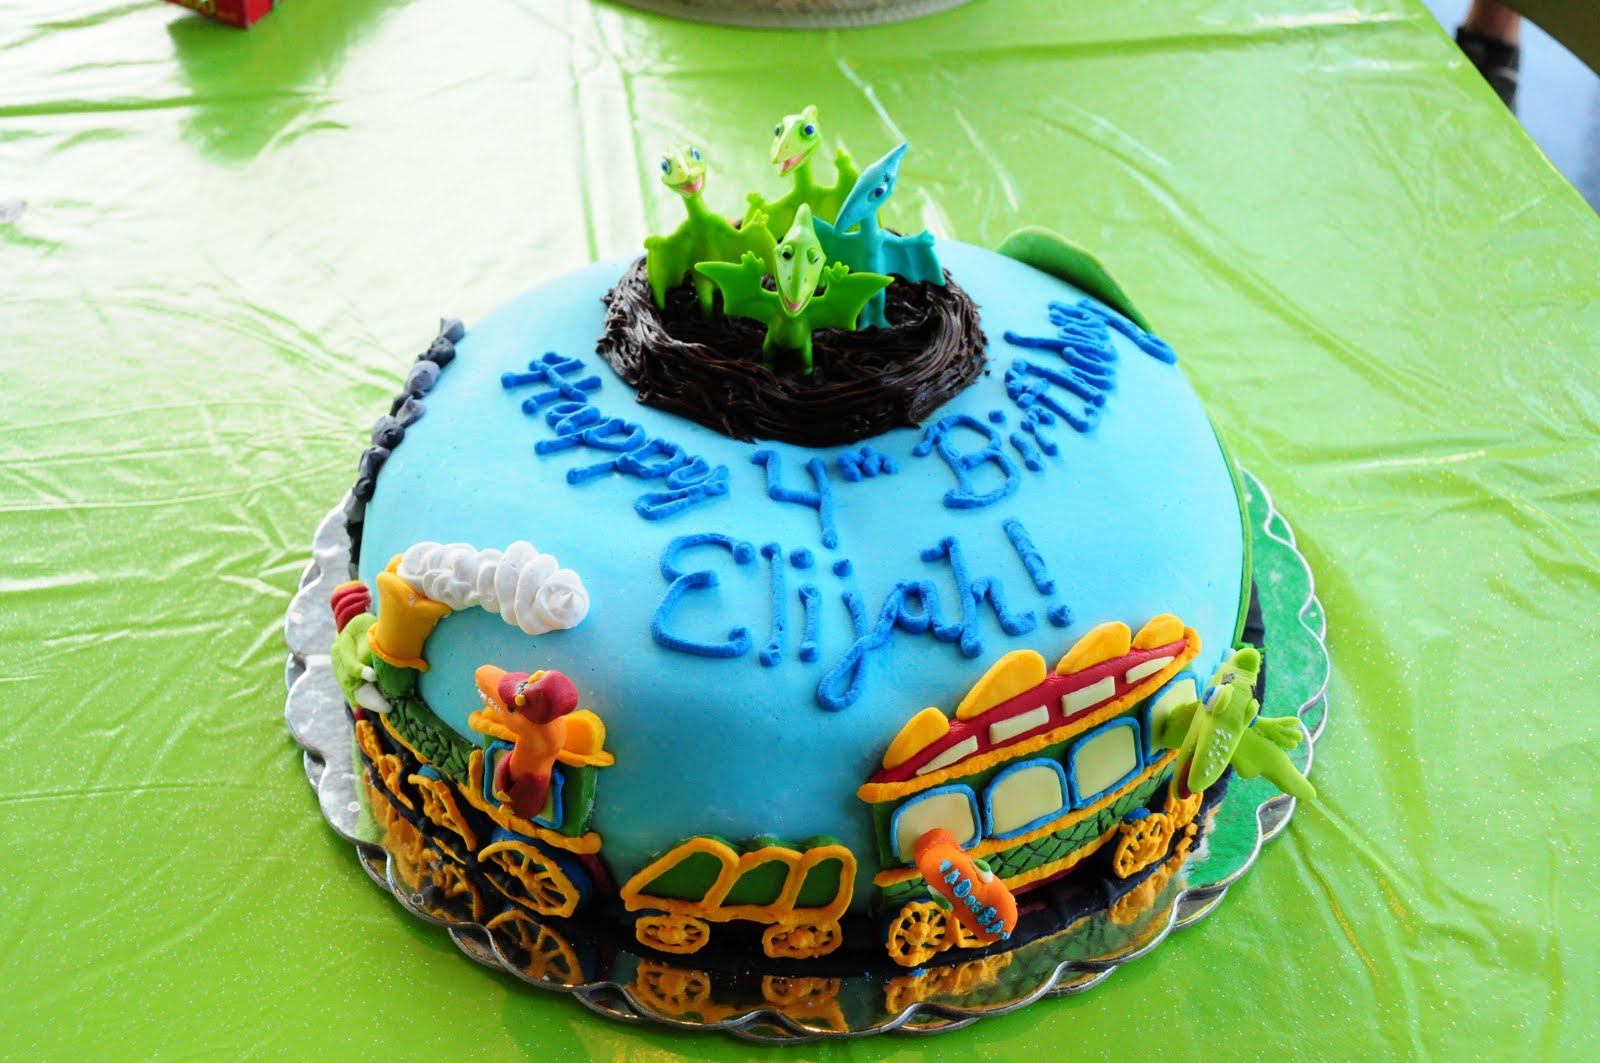 Dinosaur Train Cake Images : Cakes by Kimberly: Dinosaur Train Cake - From PBS show ...